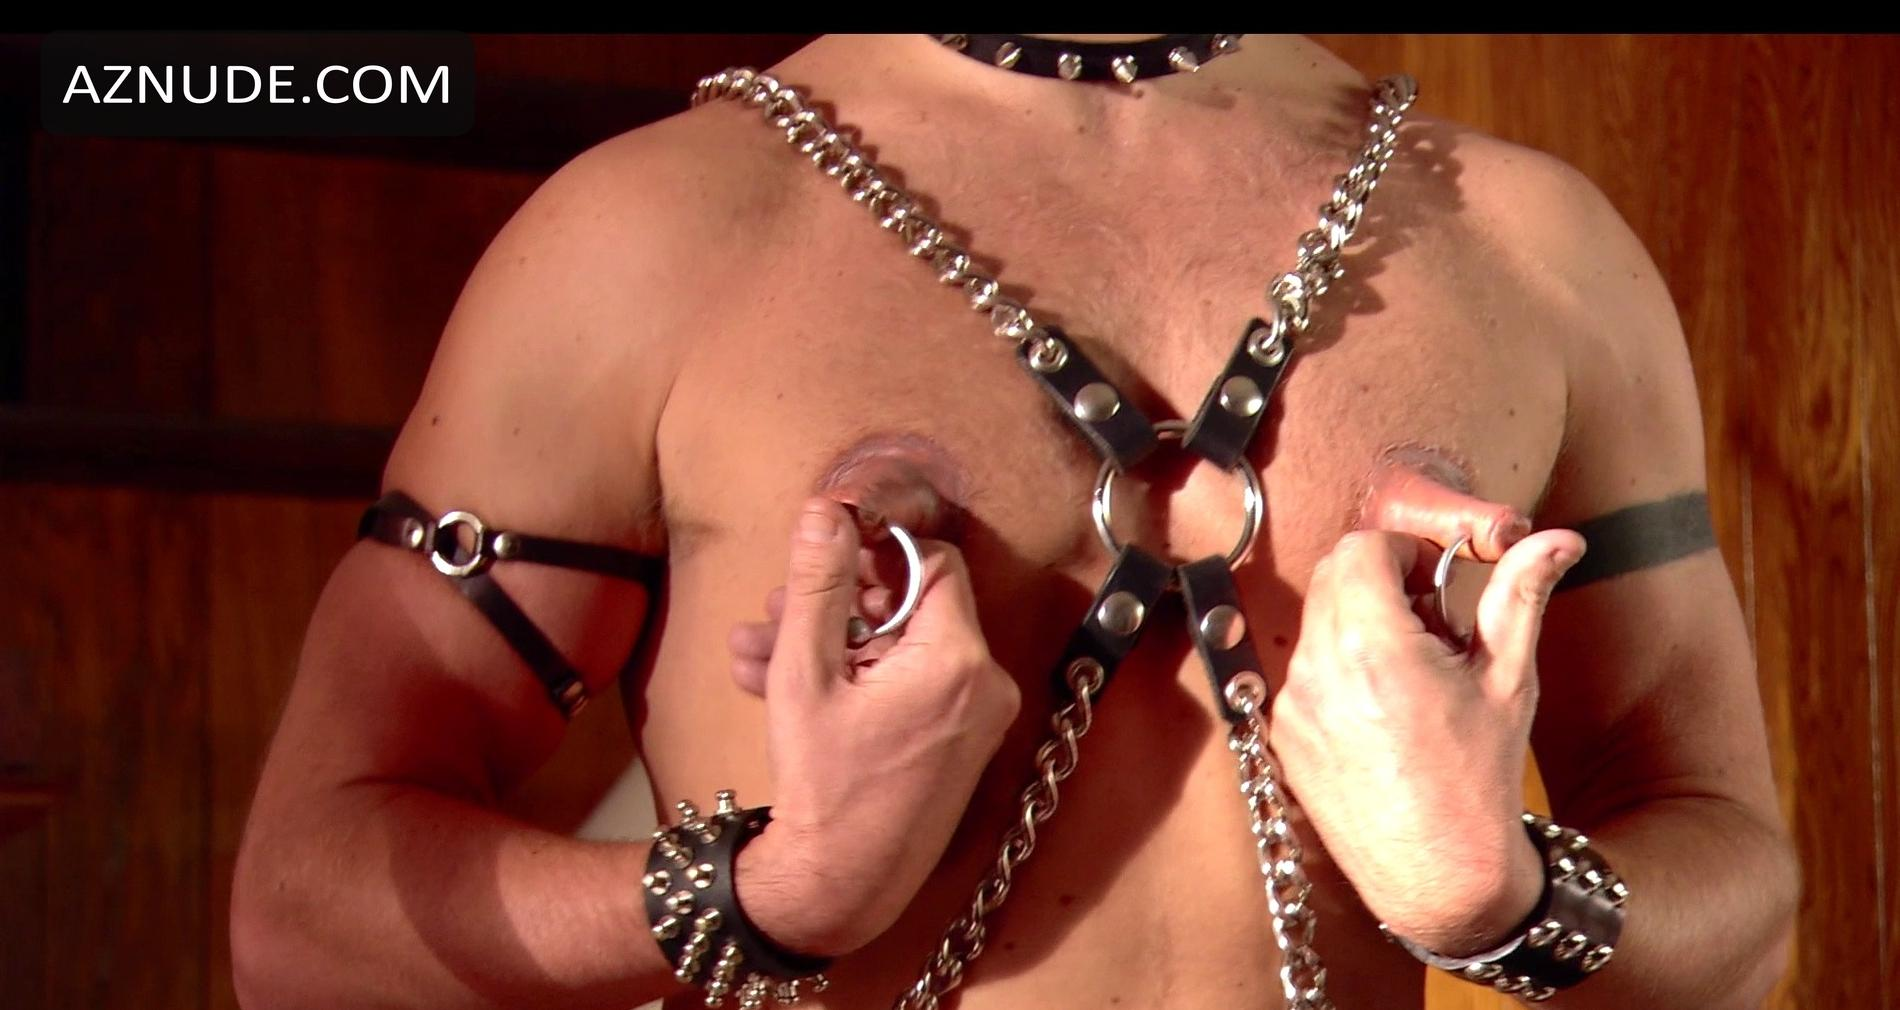 from Colby gay s m hurcules film